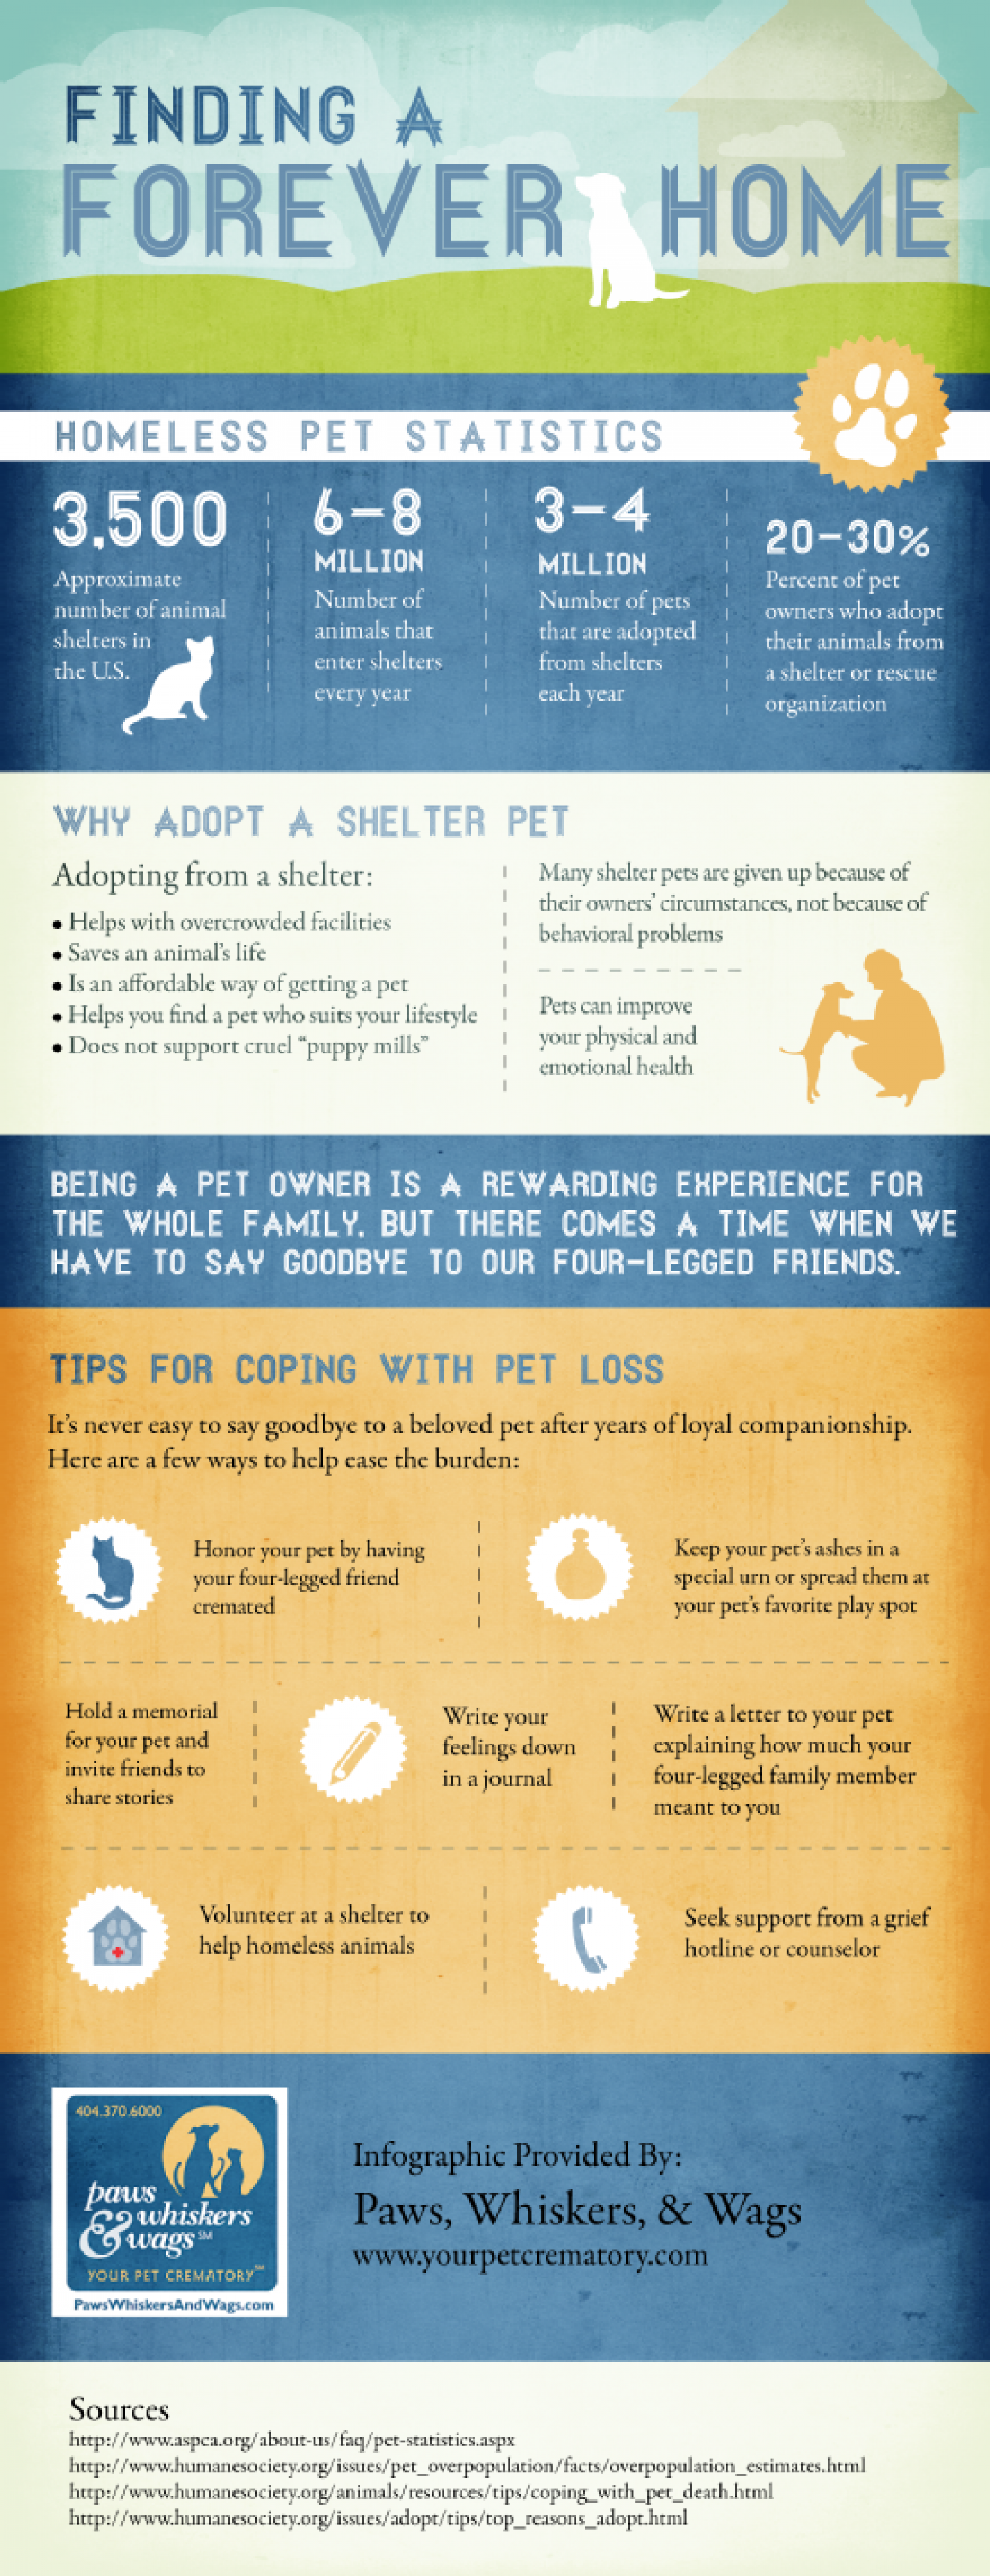 Finding a Forever Home Infographic